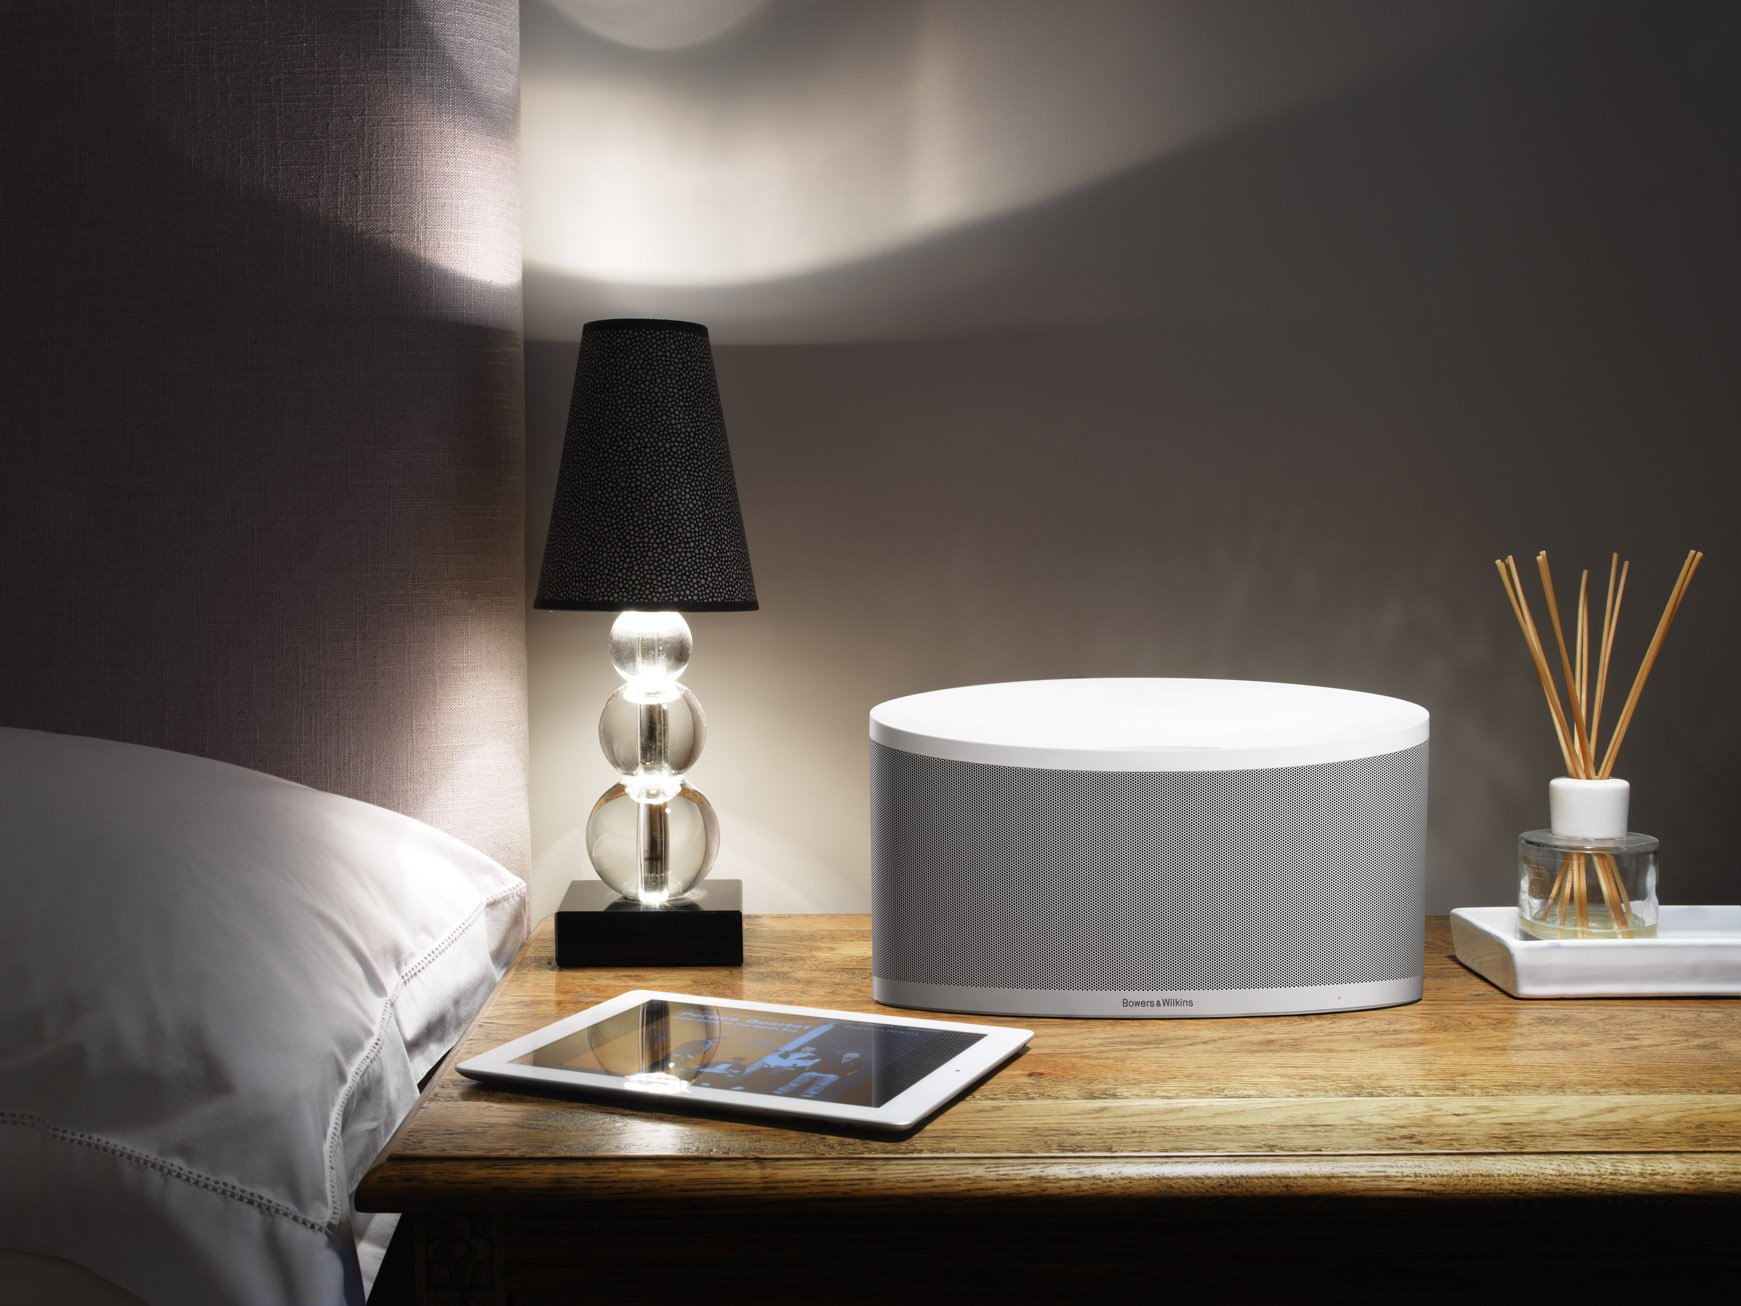 Bowers & Wilkins Z2 White RC Wireless Music System Recertified - White by Bowers & Wilkins (Image #4)